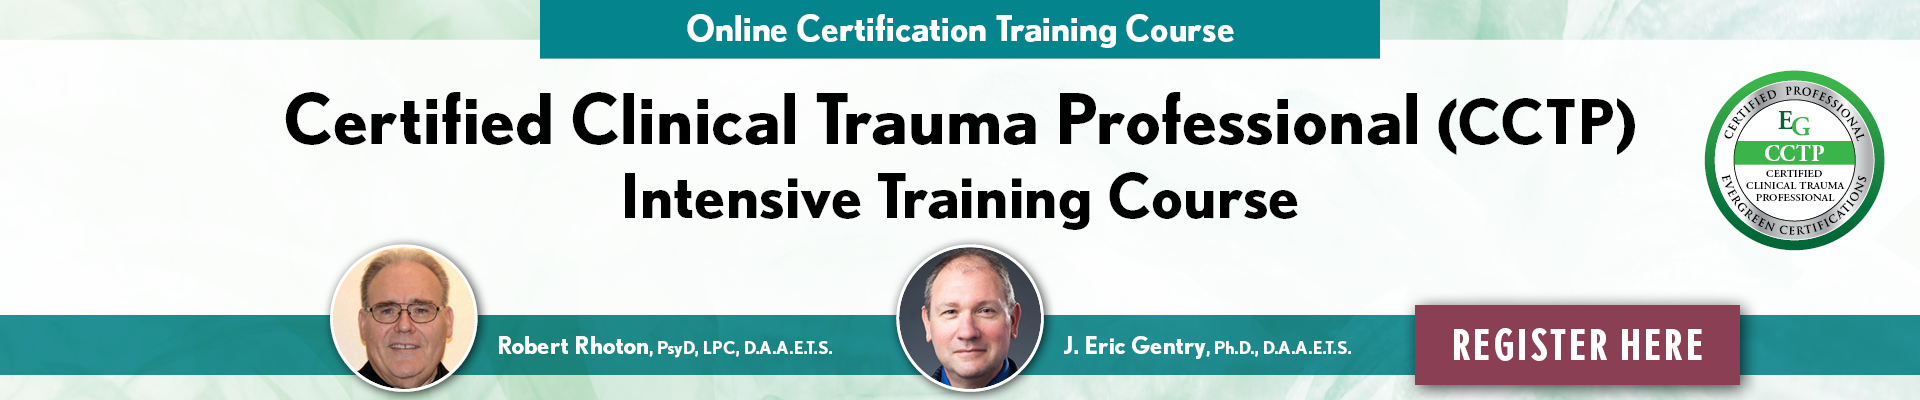 Certified Clinical Trauma Professional (CCTP) Intensive Training Course